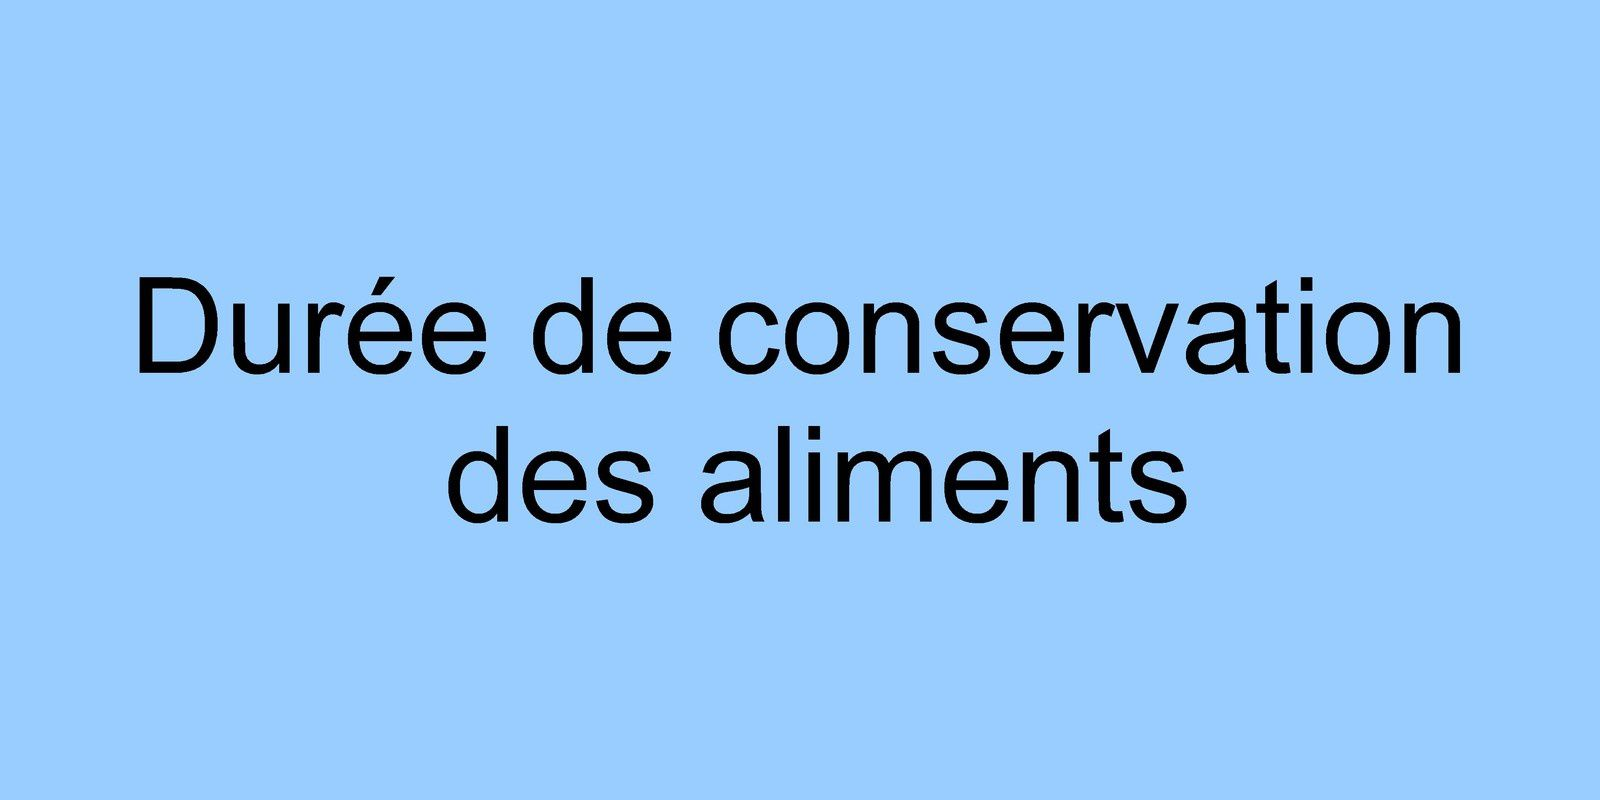 Durée de conservation des aliments